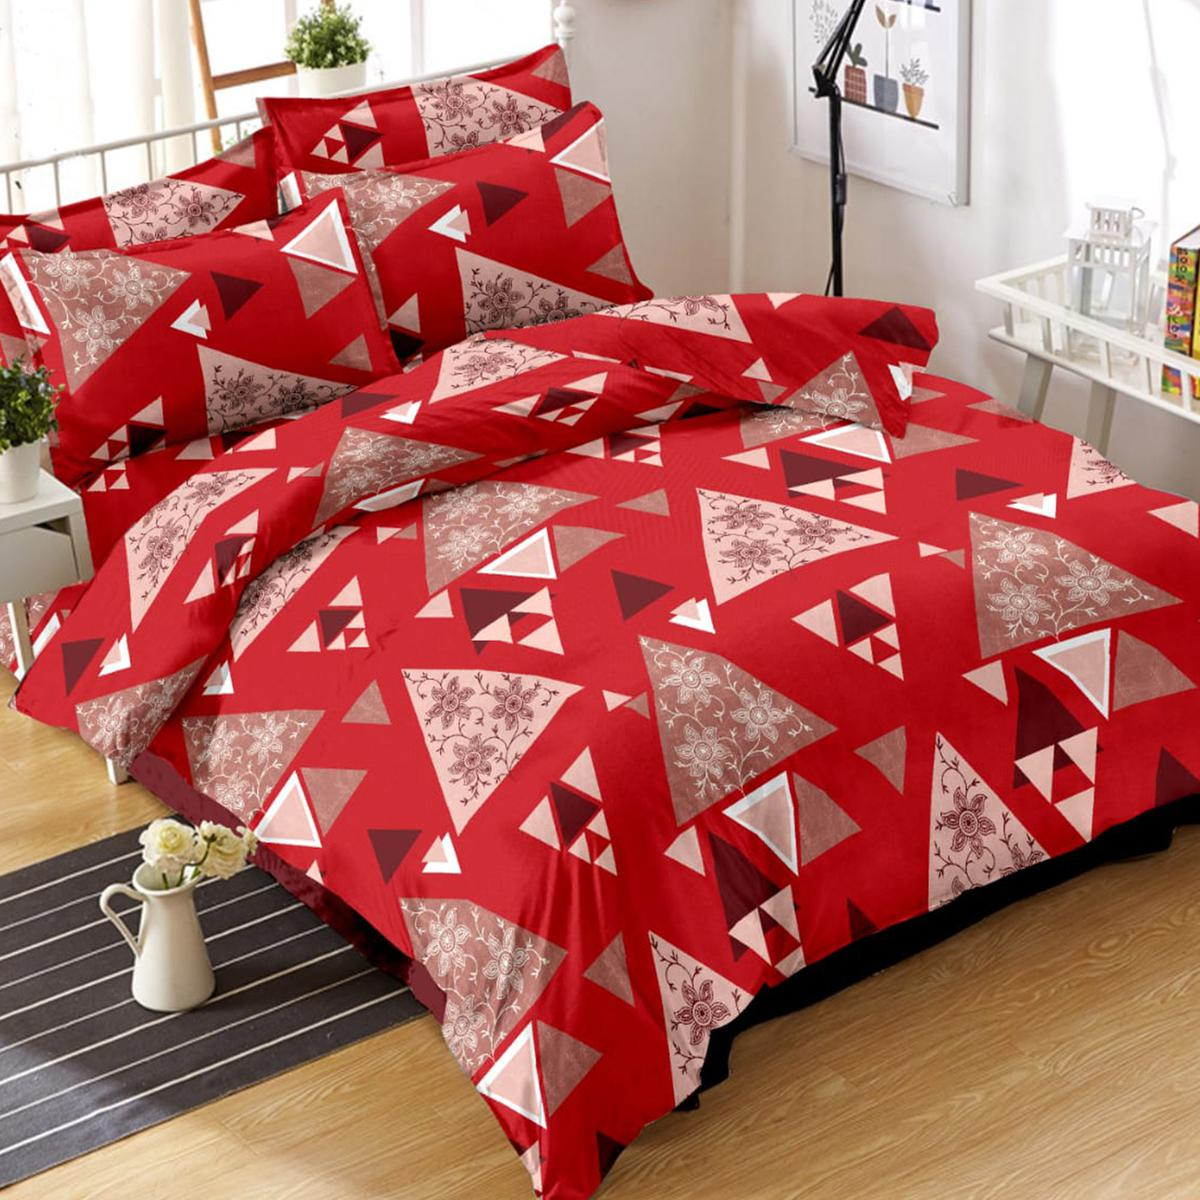 Elegant Red Colored Geometric Printed Cotton Double Bedsheet With Pillow Cover